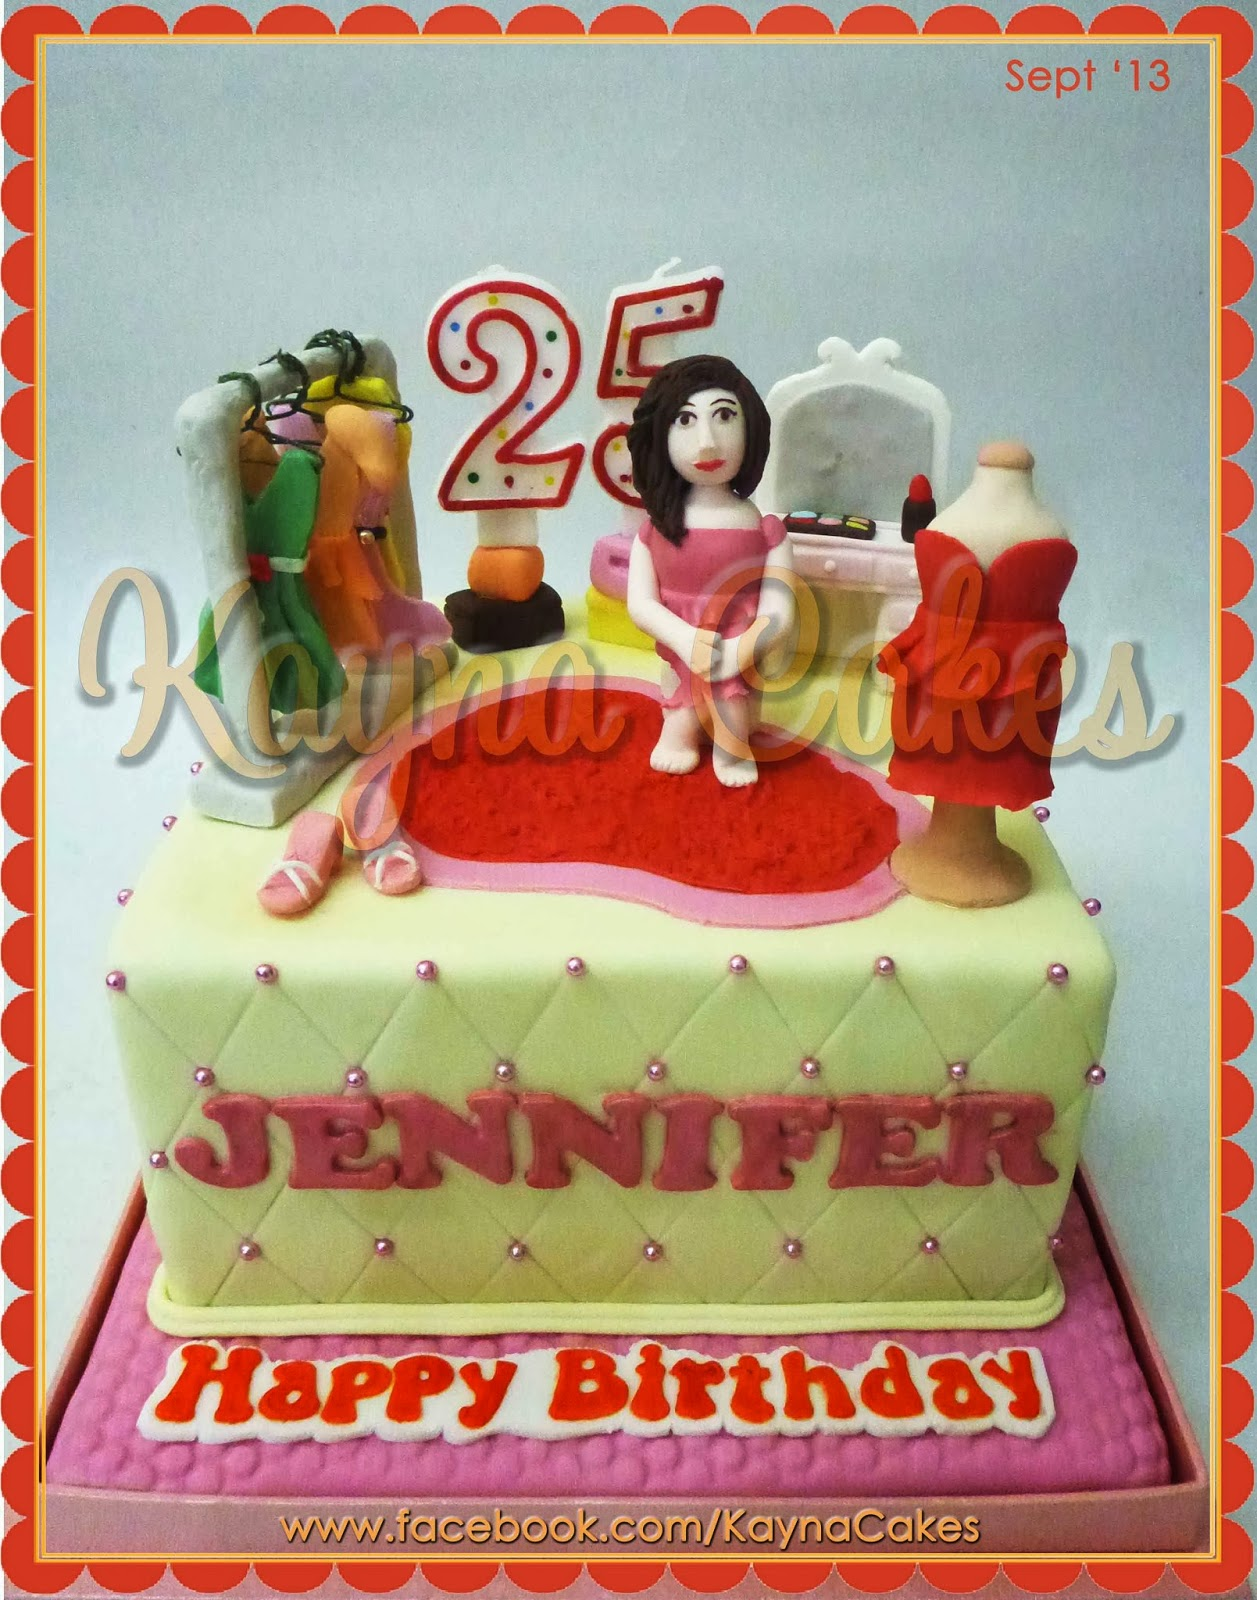 Kayna Cakes And Cupcakes Jennifer 25th Birthday Cake